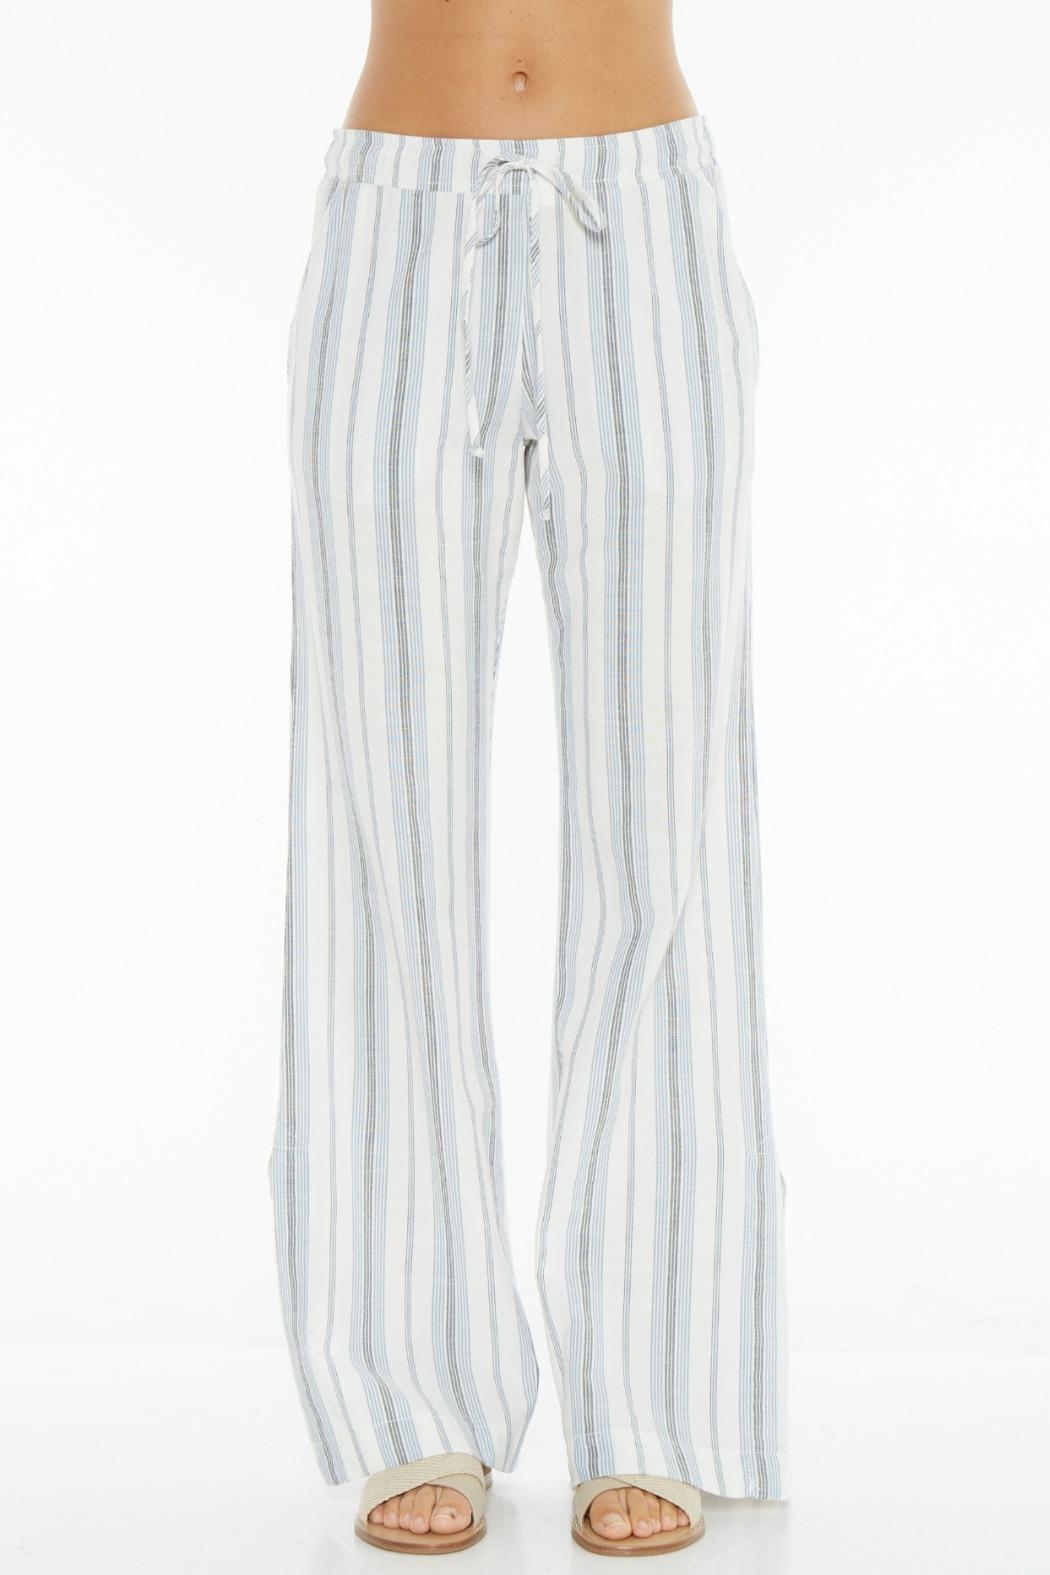 Bella Dahl Side Slit Pant - Front Cropped Image